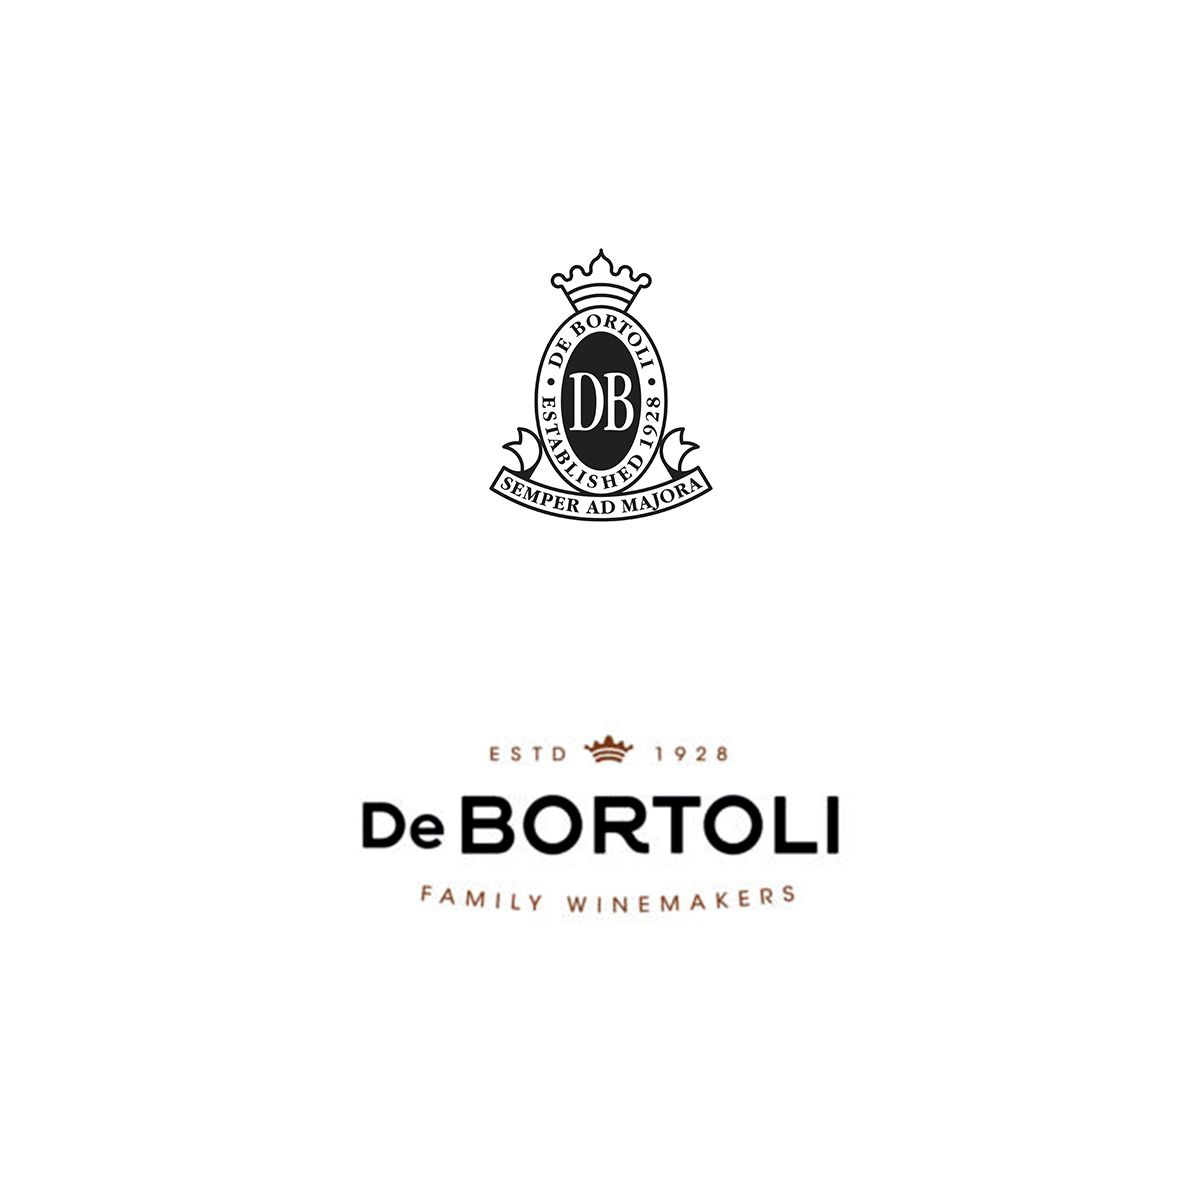 [REVIEW] DeBortoli Brand Refresh